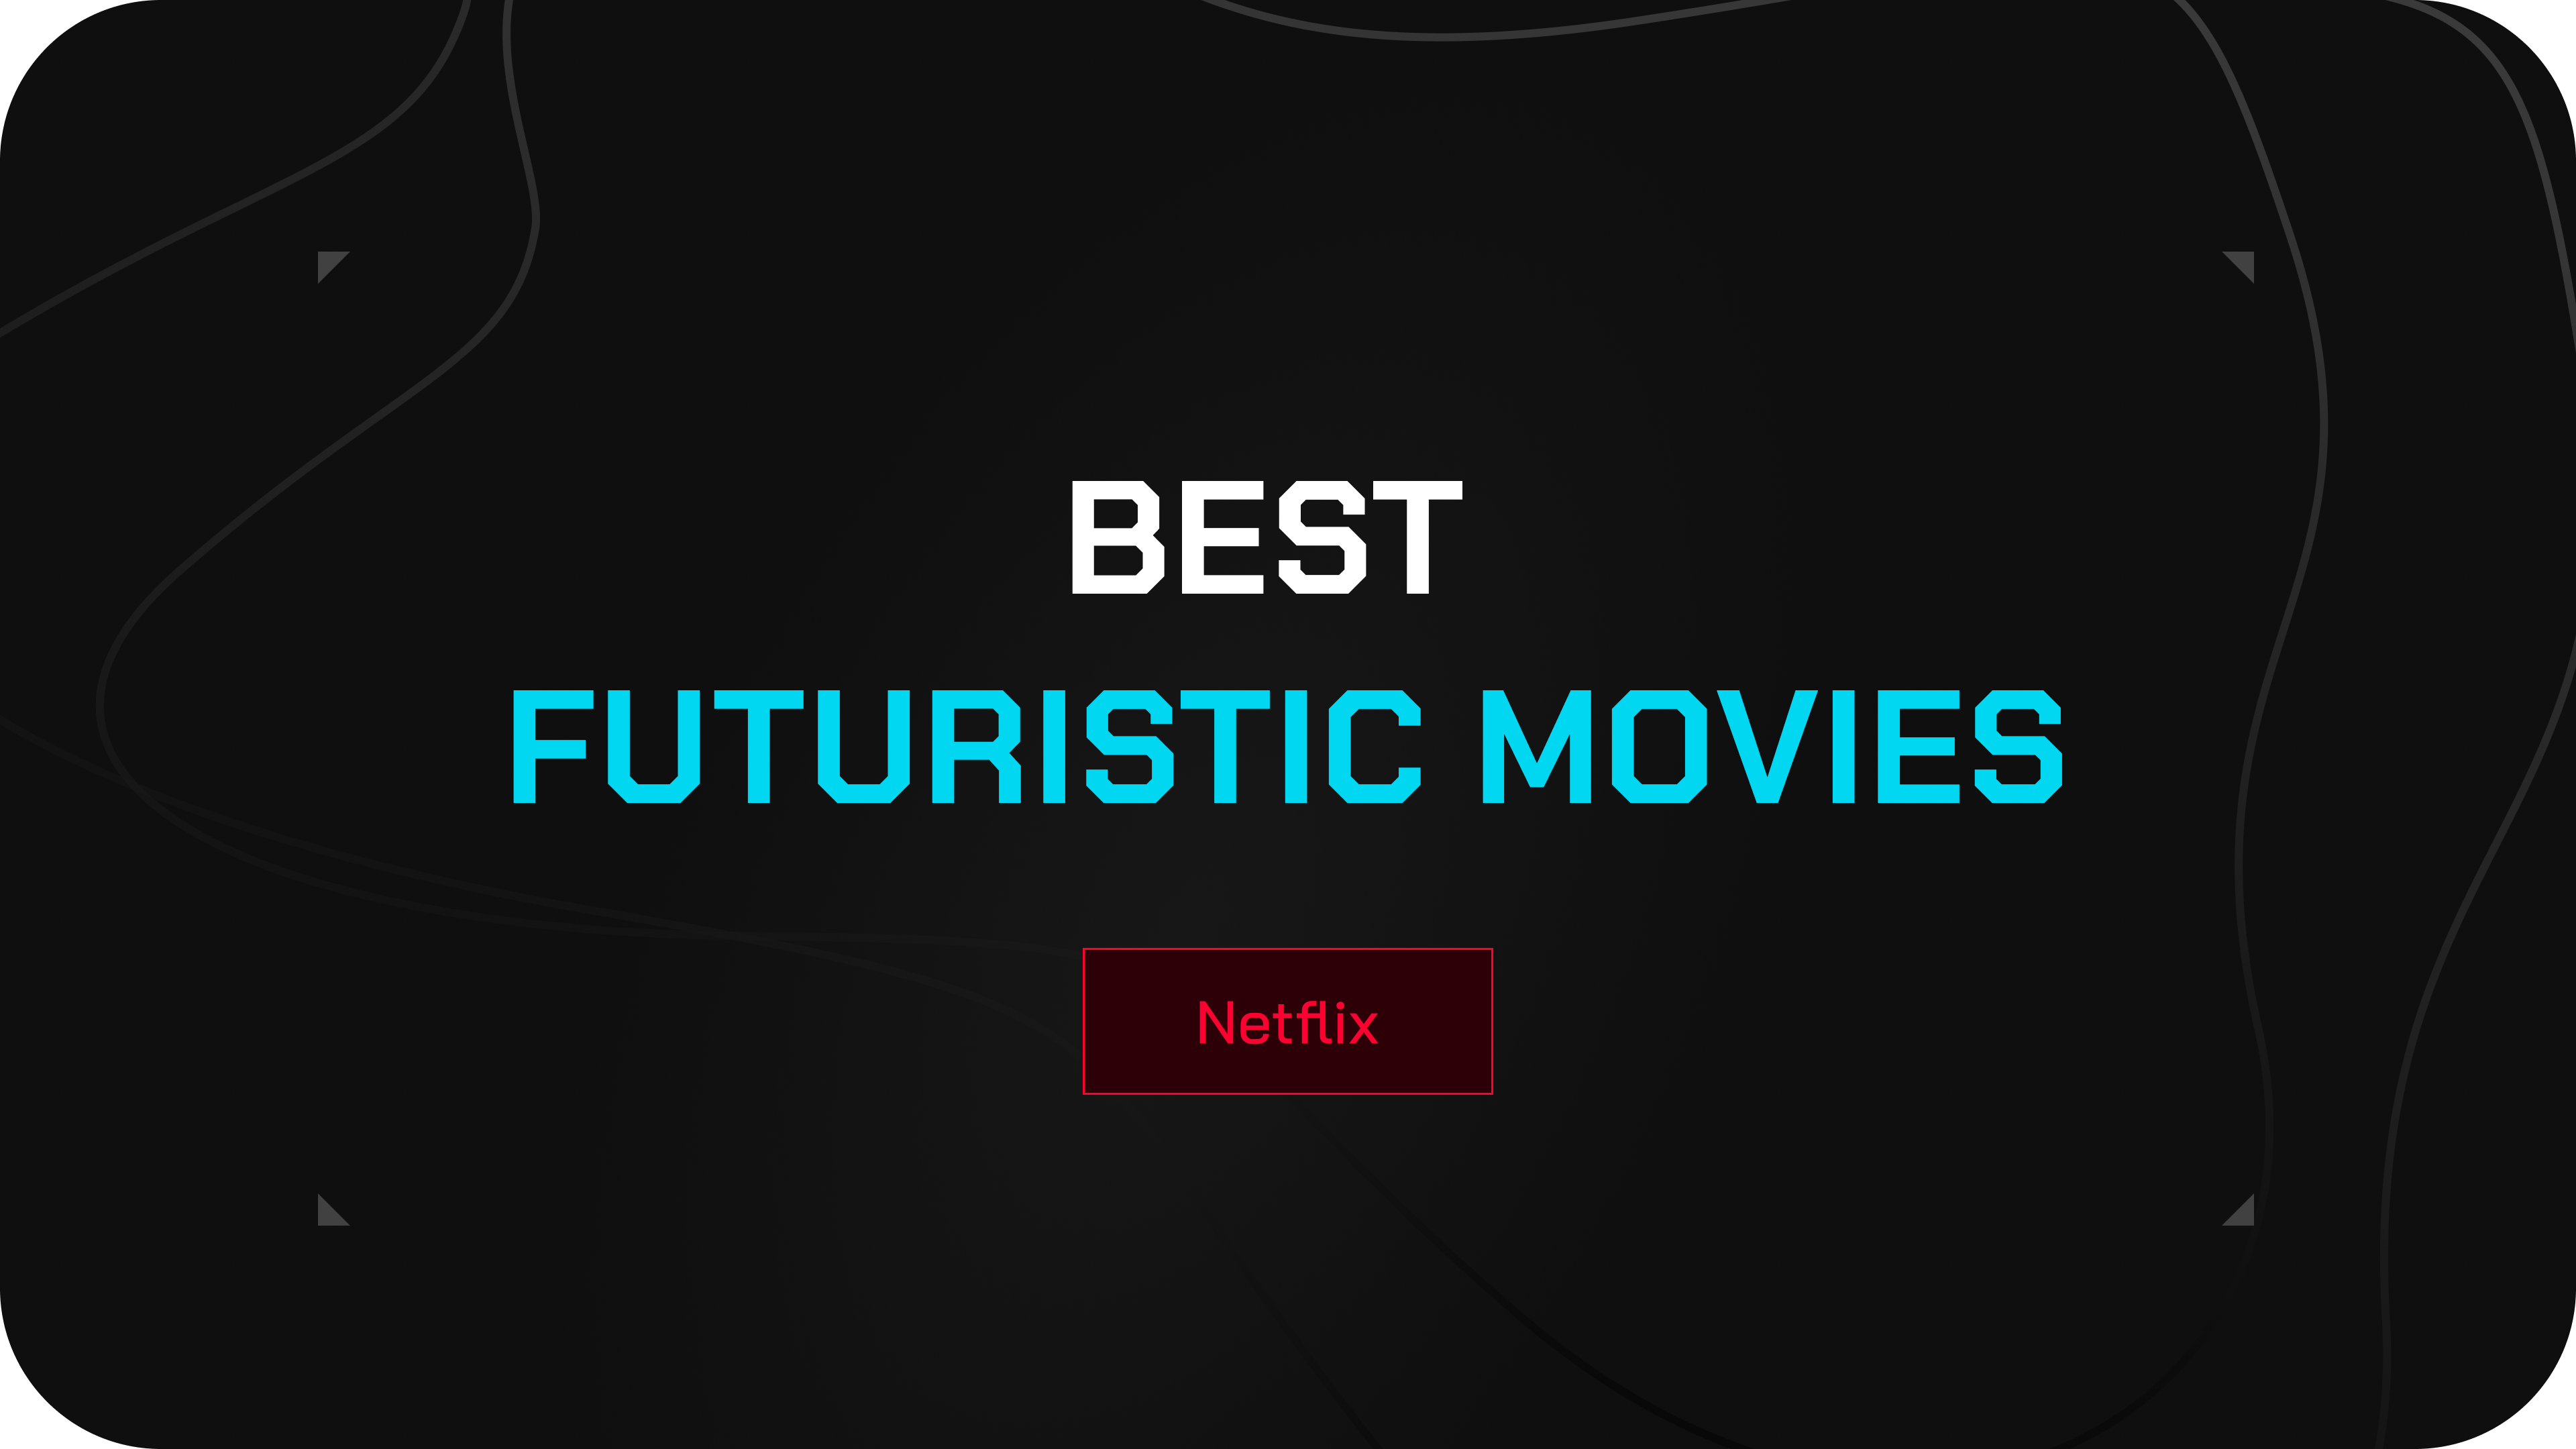 6 Best Futuristic Movies on Netflix